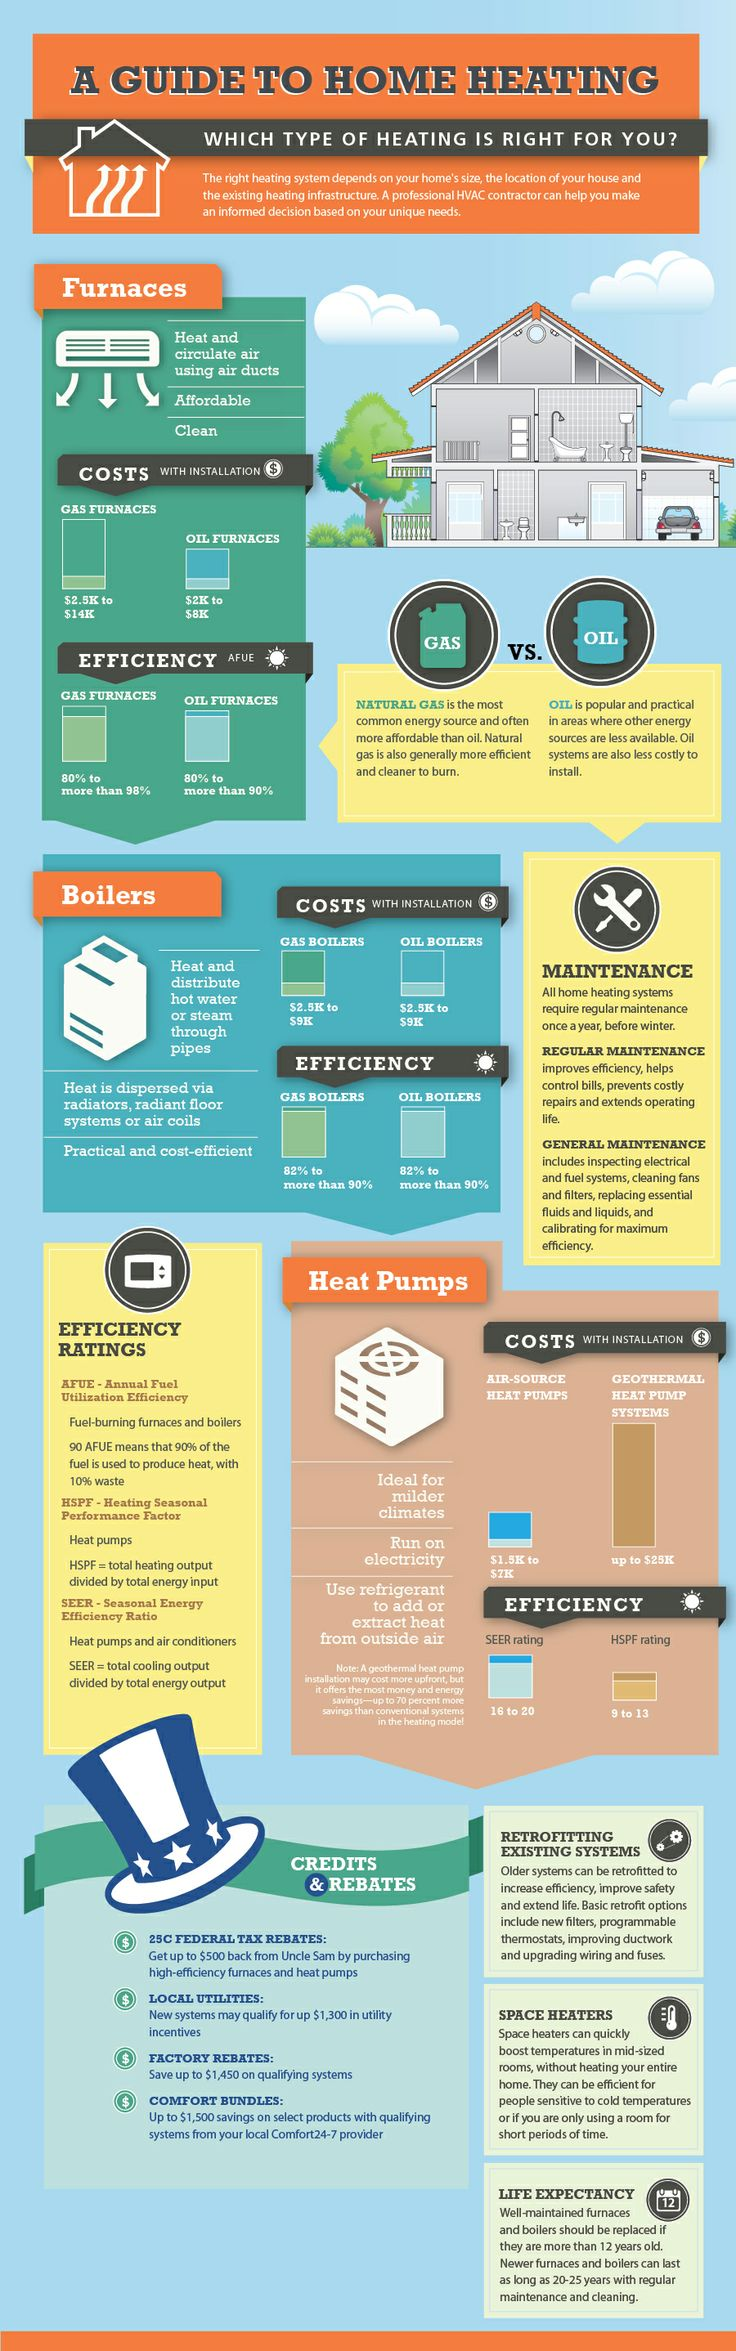 27 best Heating images on Pinterest | Infographic, Infographics and ...